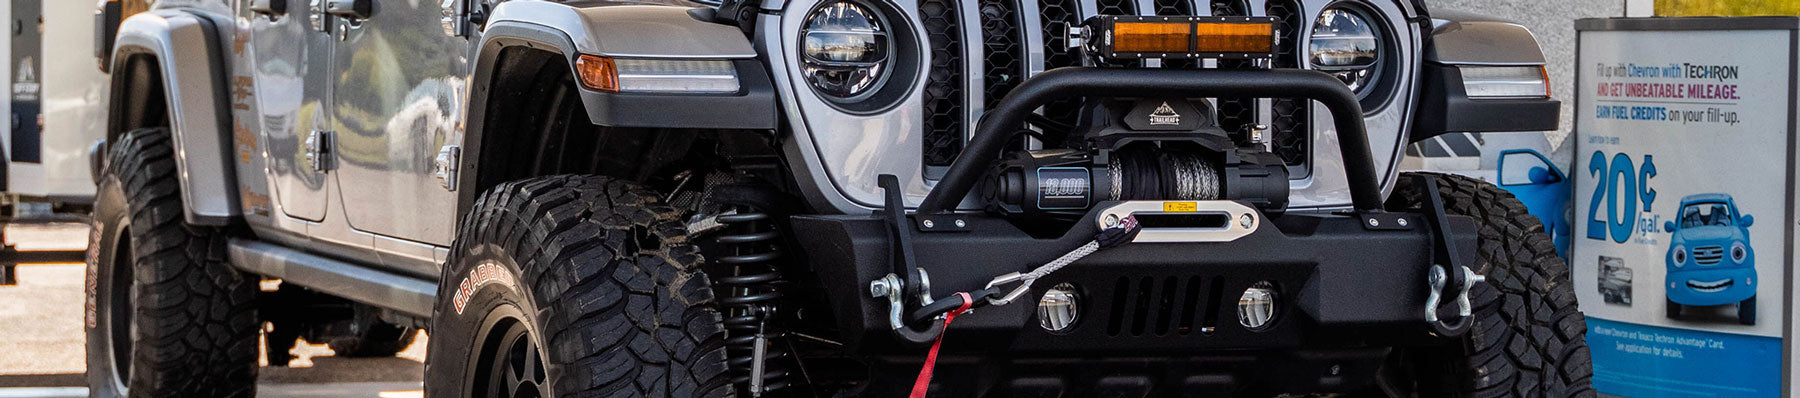 Winch Accessories | Tuff Stuff 4x4 & Tuff Stuff Overland